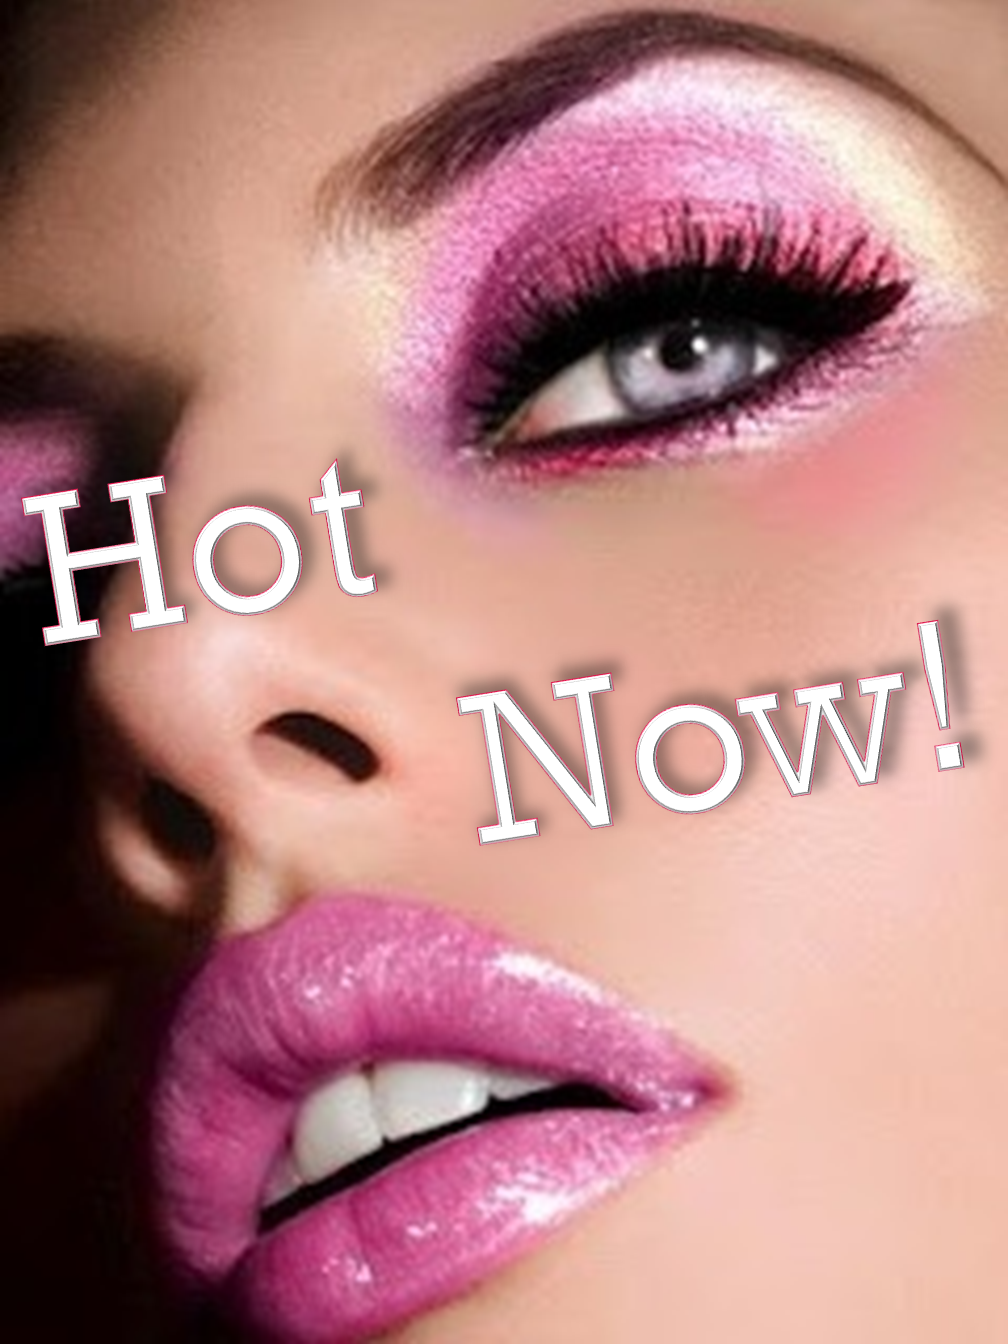 Hot Now!